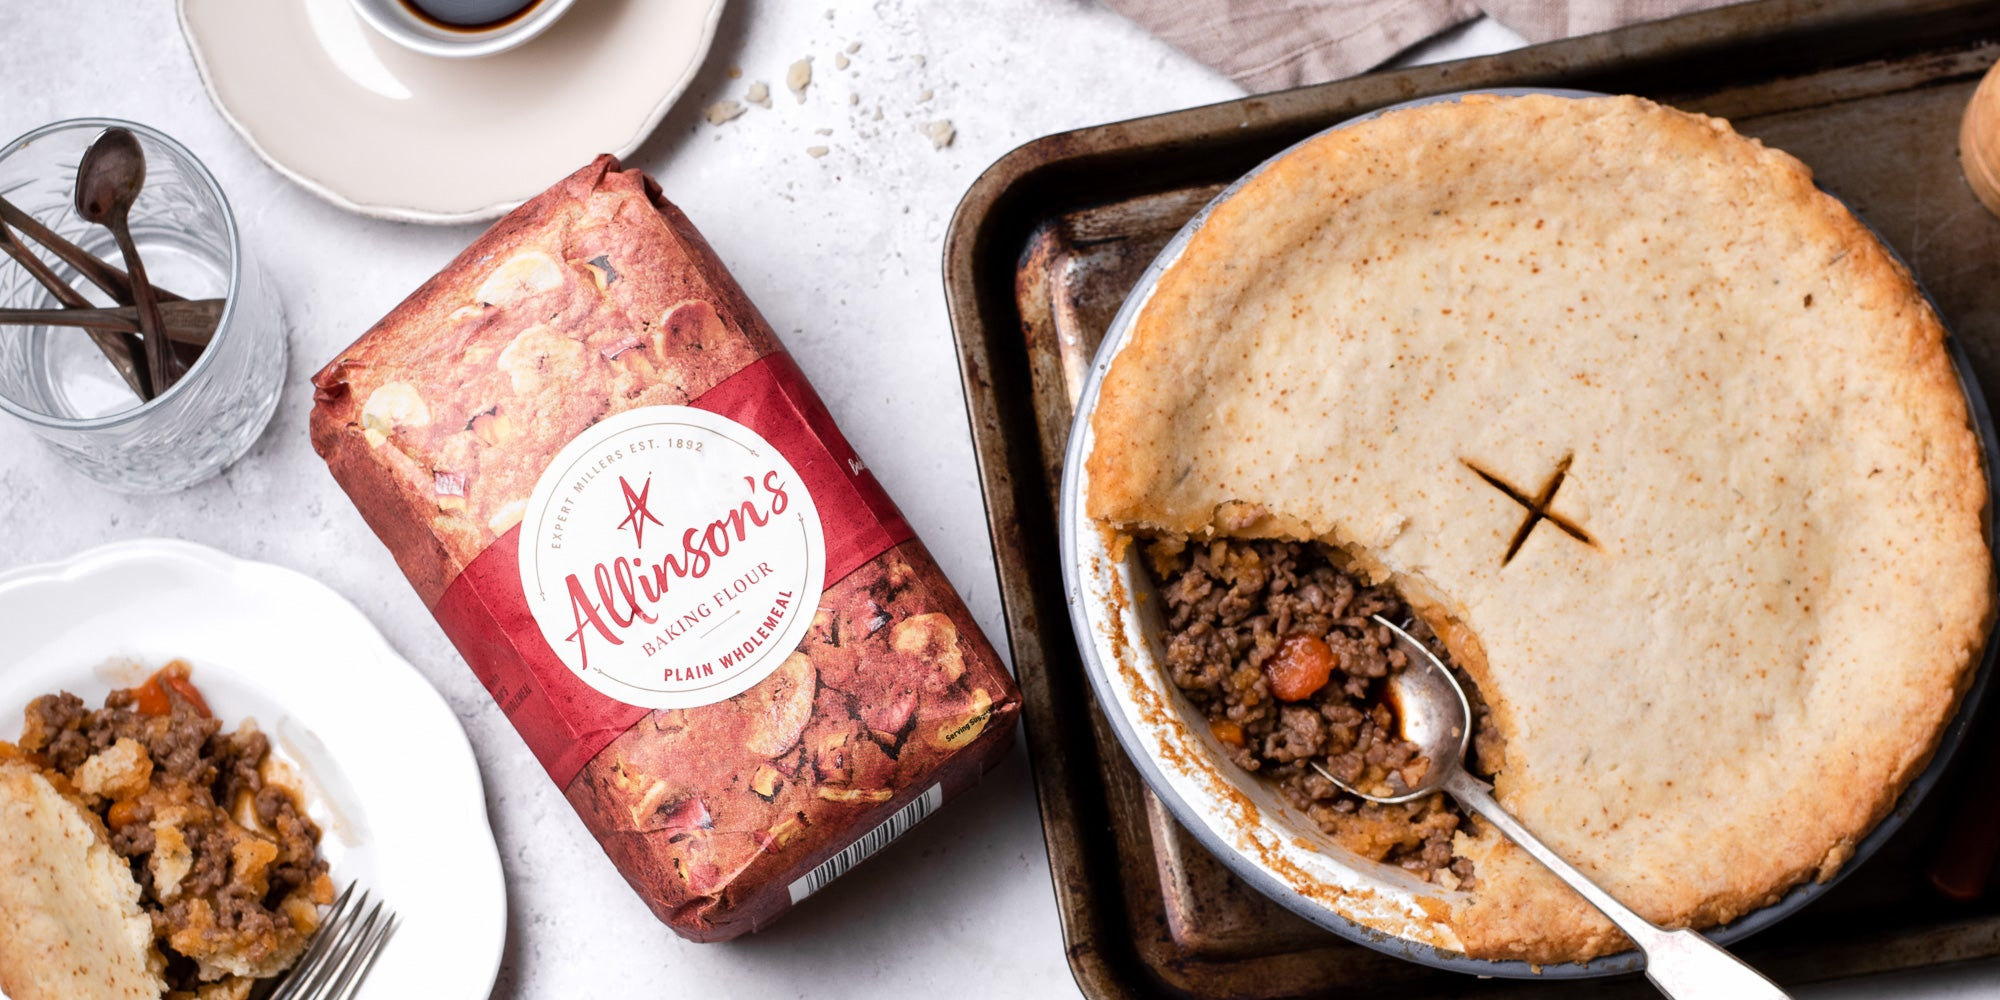 Suet Crusted Beef & Onion Pie on a baking tray, with a spoon serving some of the pie filling. Next to a bag of Allinson's Plain Wholemeal flour and a plate with a serving of pie.